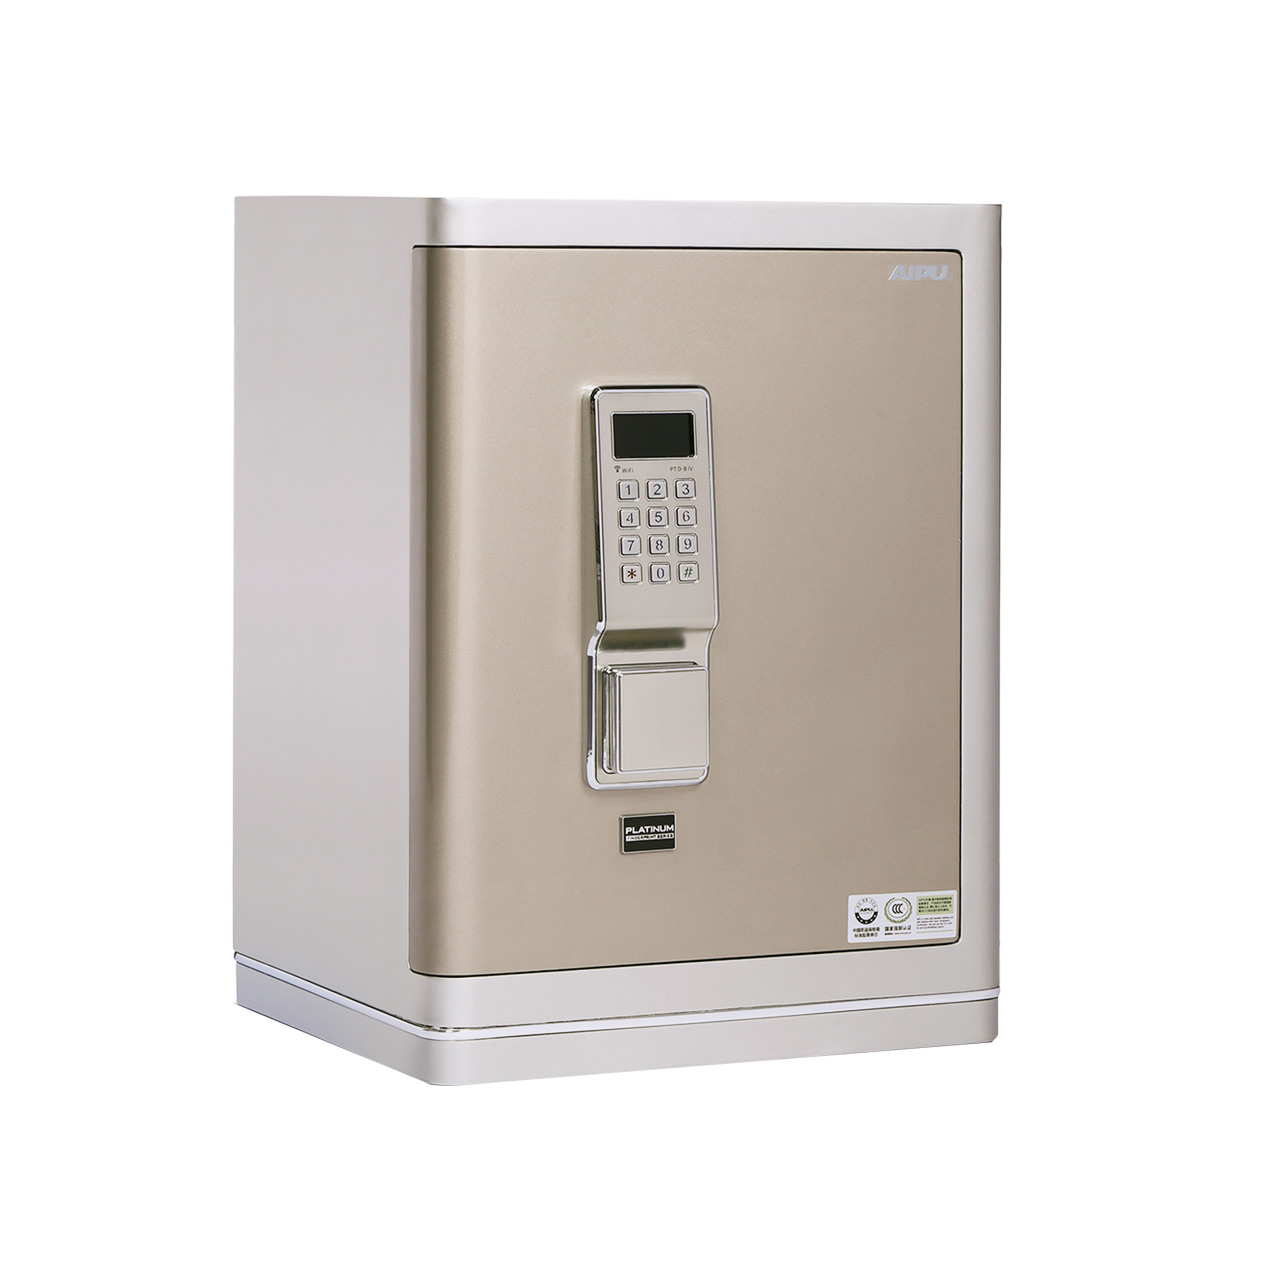 AIPU AI spectrum intelligent electronic Password Safe Home